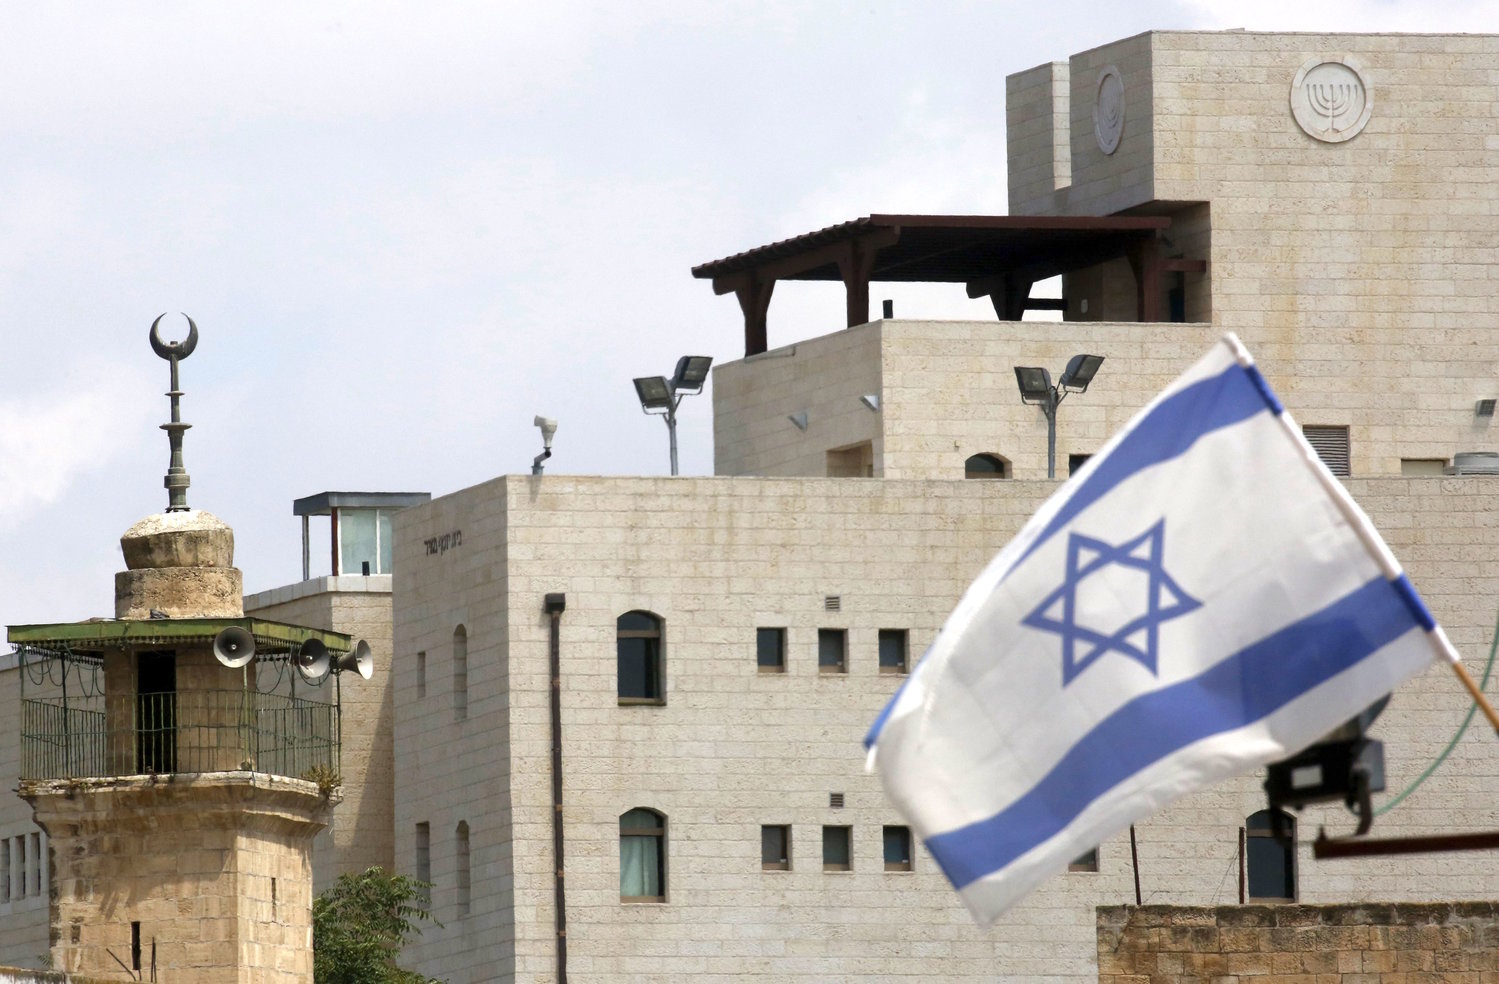 An Israeli flag in the small Hebron Jewish community, near the minaret of a mosque.